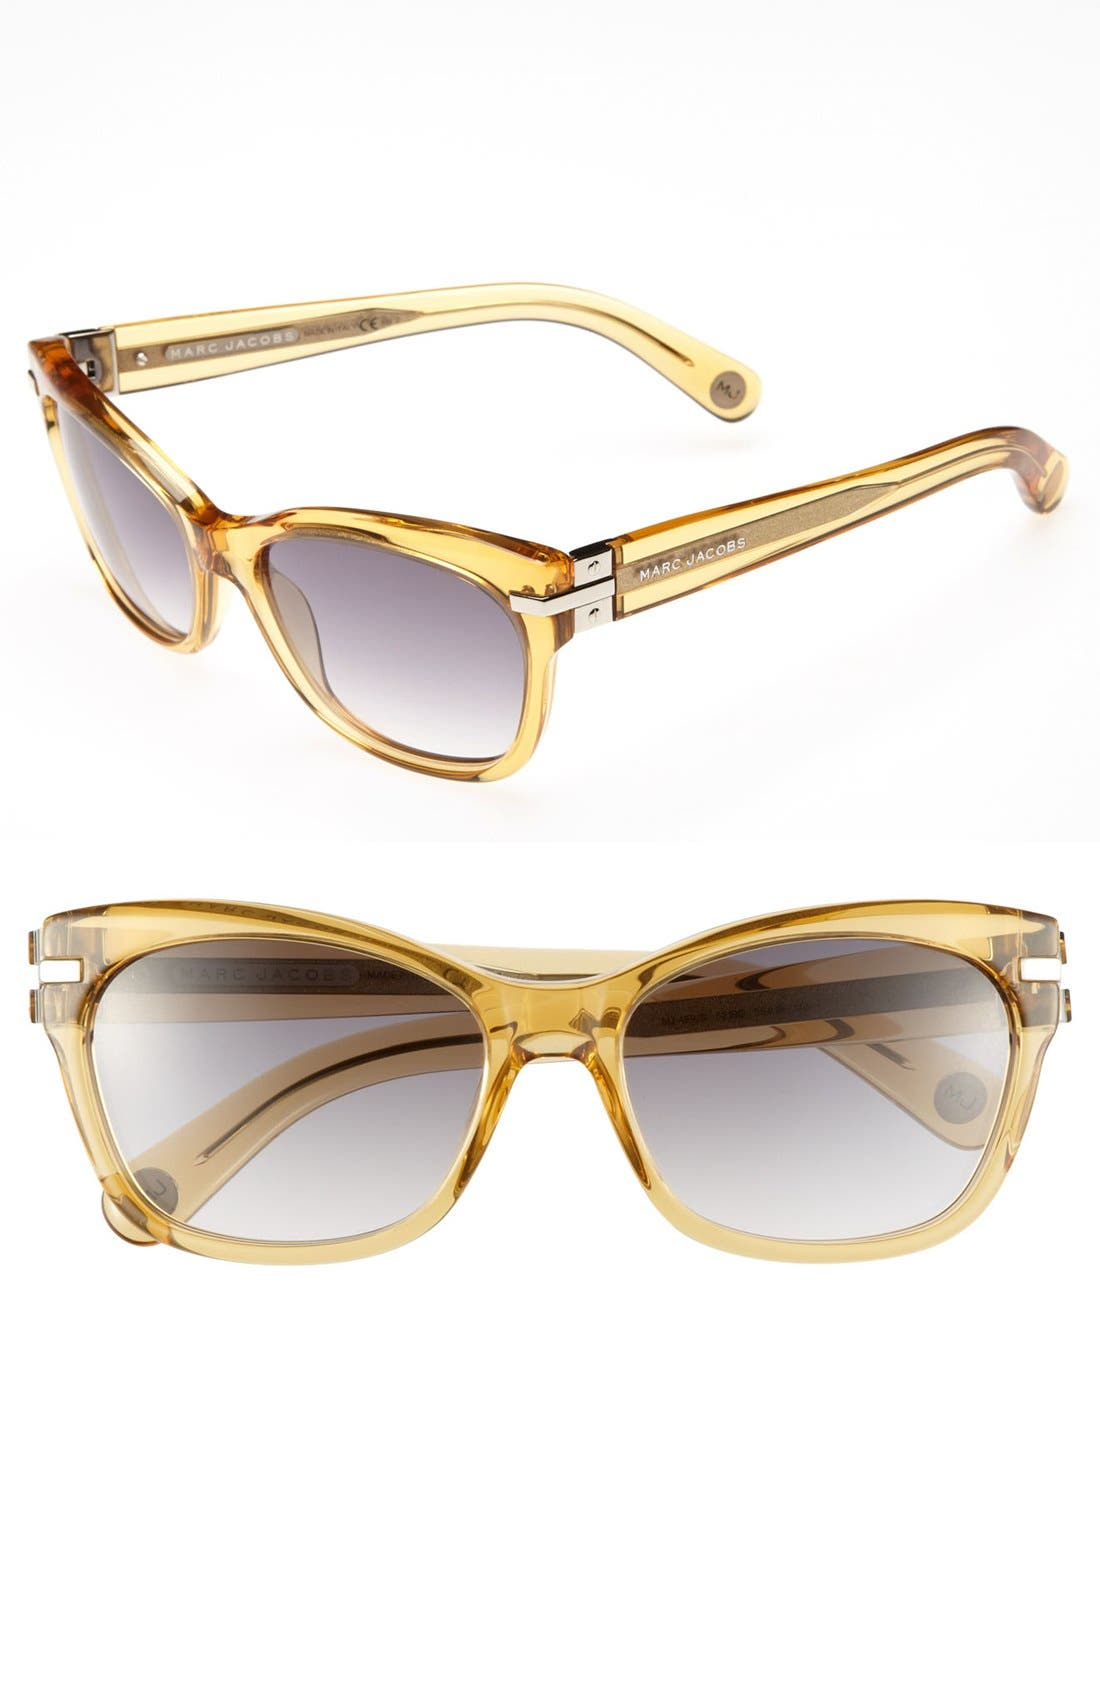 Alternate Image 1 Selected - MARC JACOBS 56mm Retro Sunglasses